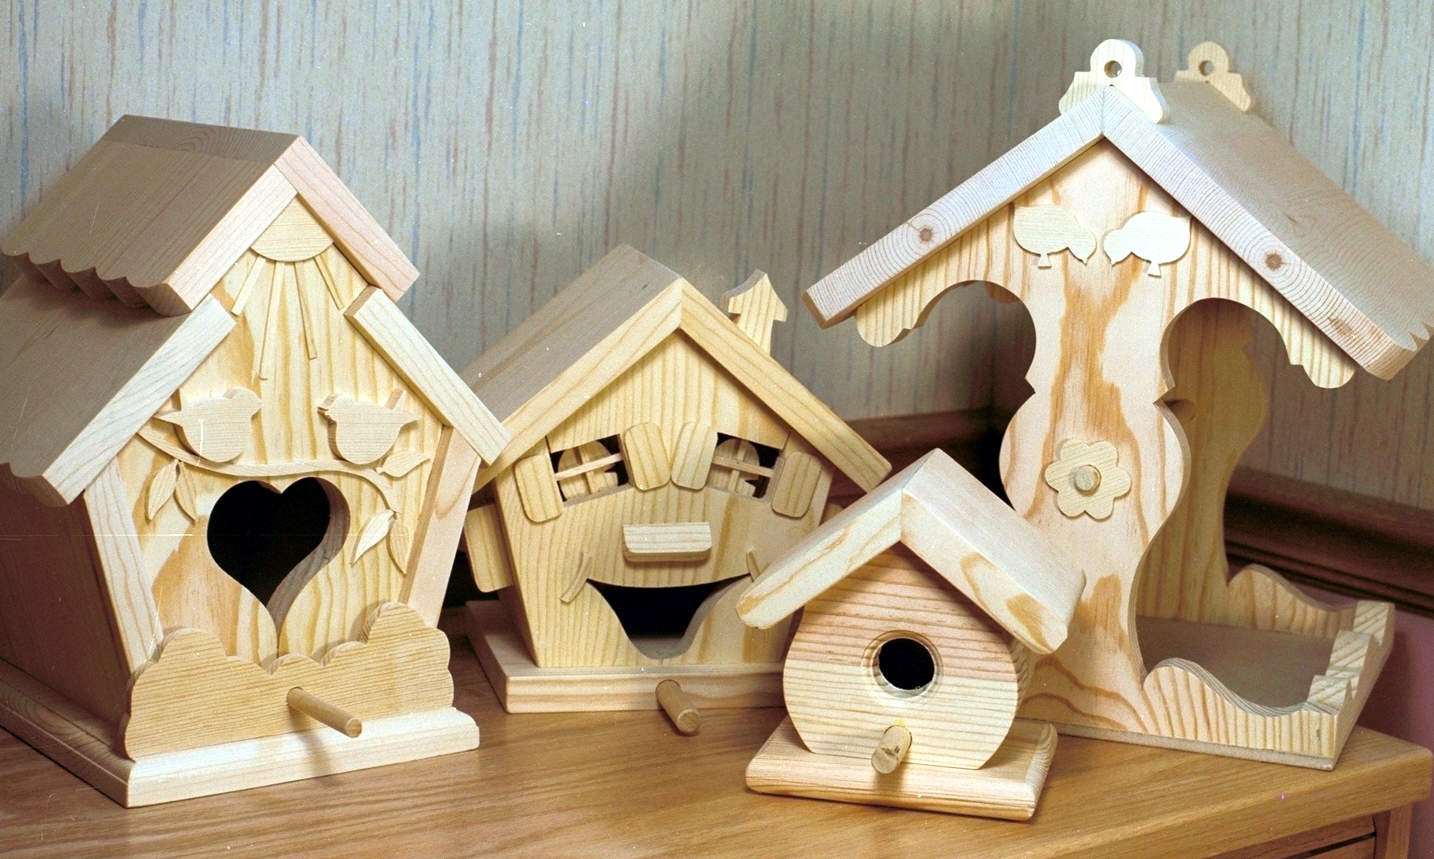 Four woodworking plans for birdhouses and a feeder. Full size plans for houses for the yard or ...